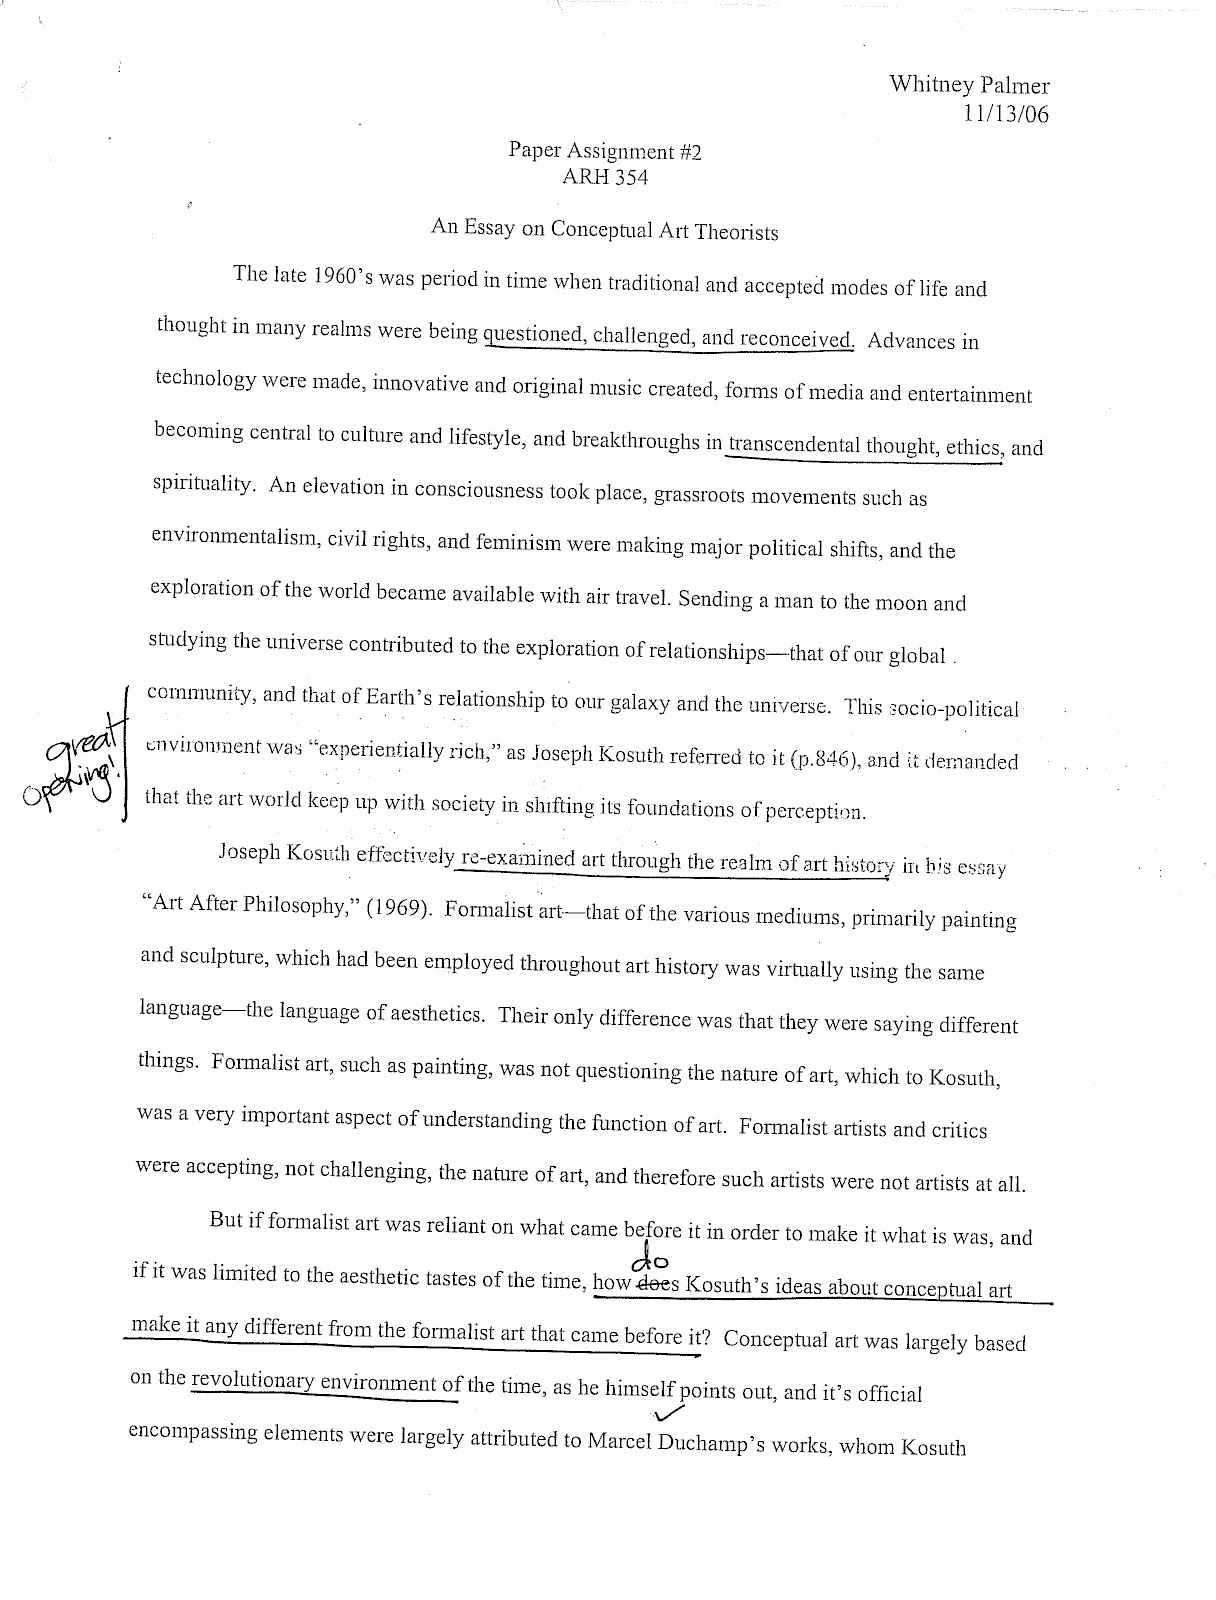 007 Art Essay Page Phenomenal History Introduction Pop Conclusion Outline Full